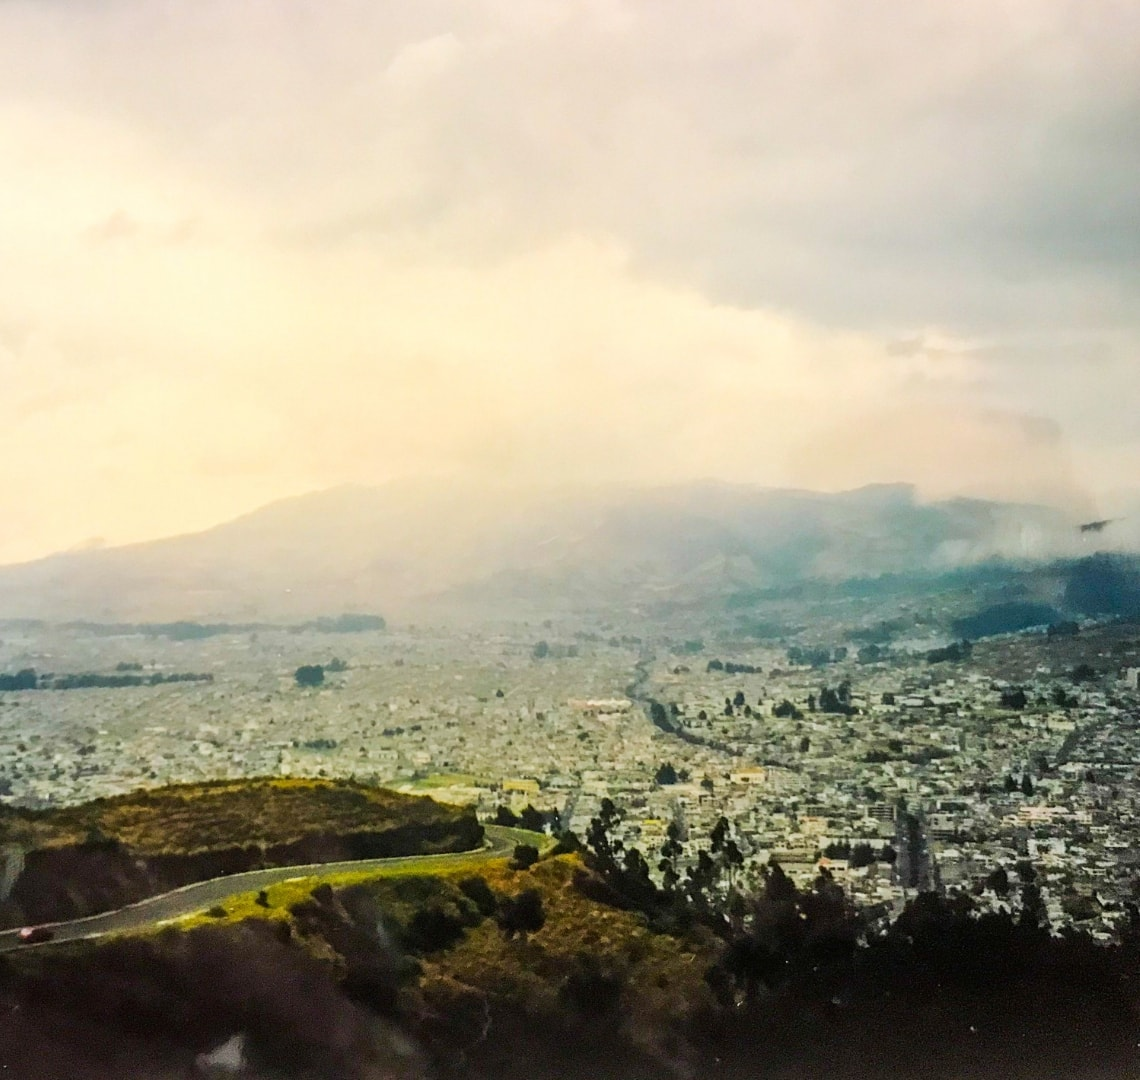 People Who Changed My Life Through Travel - Hillary - view of Quito sprawling below El Panecillo